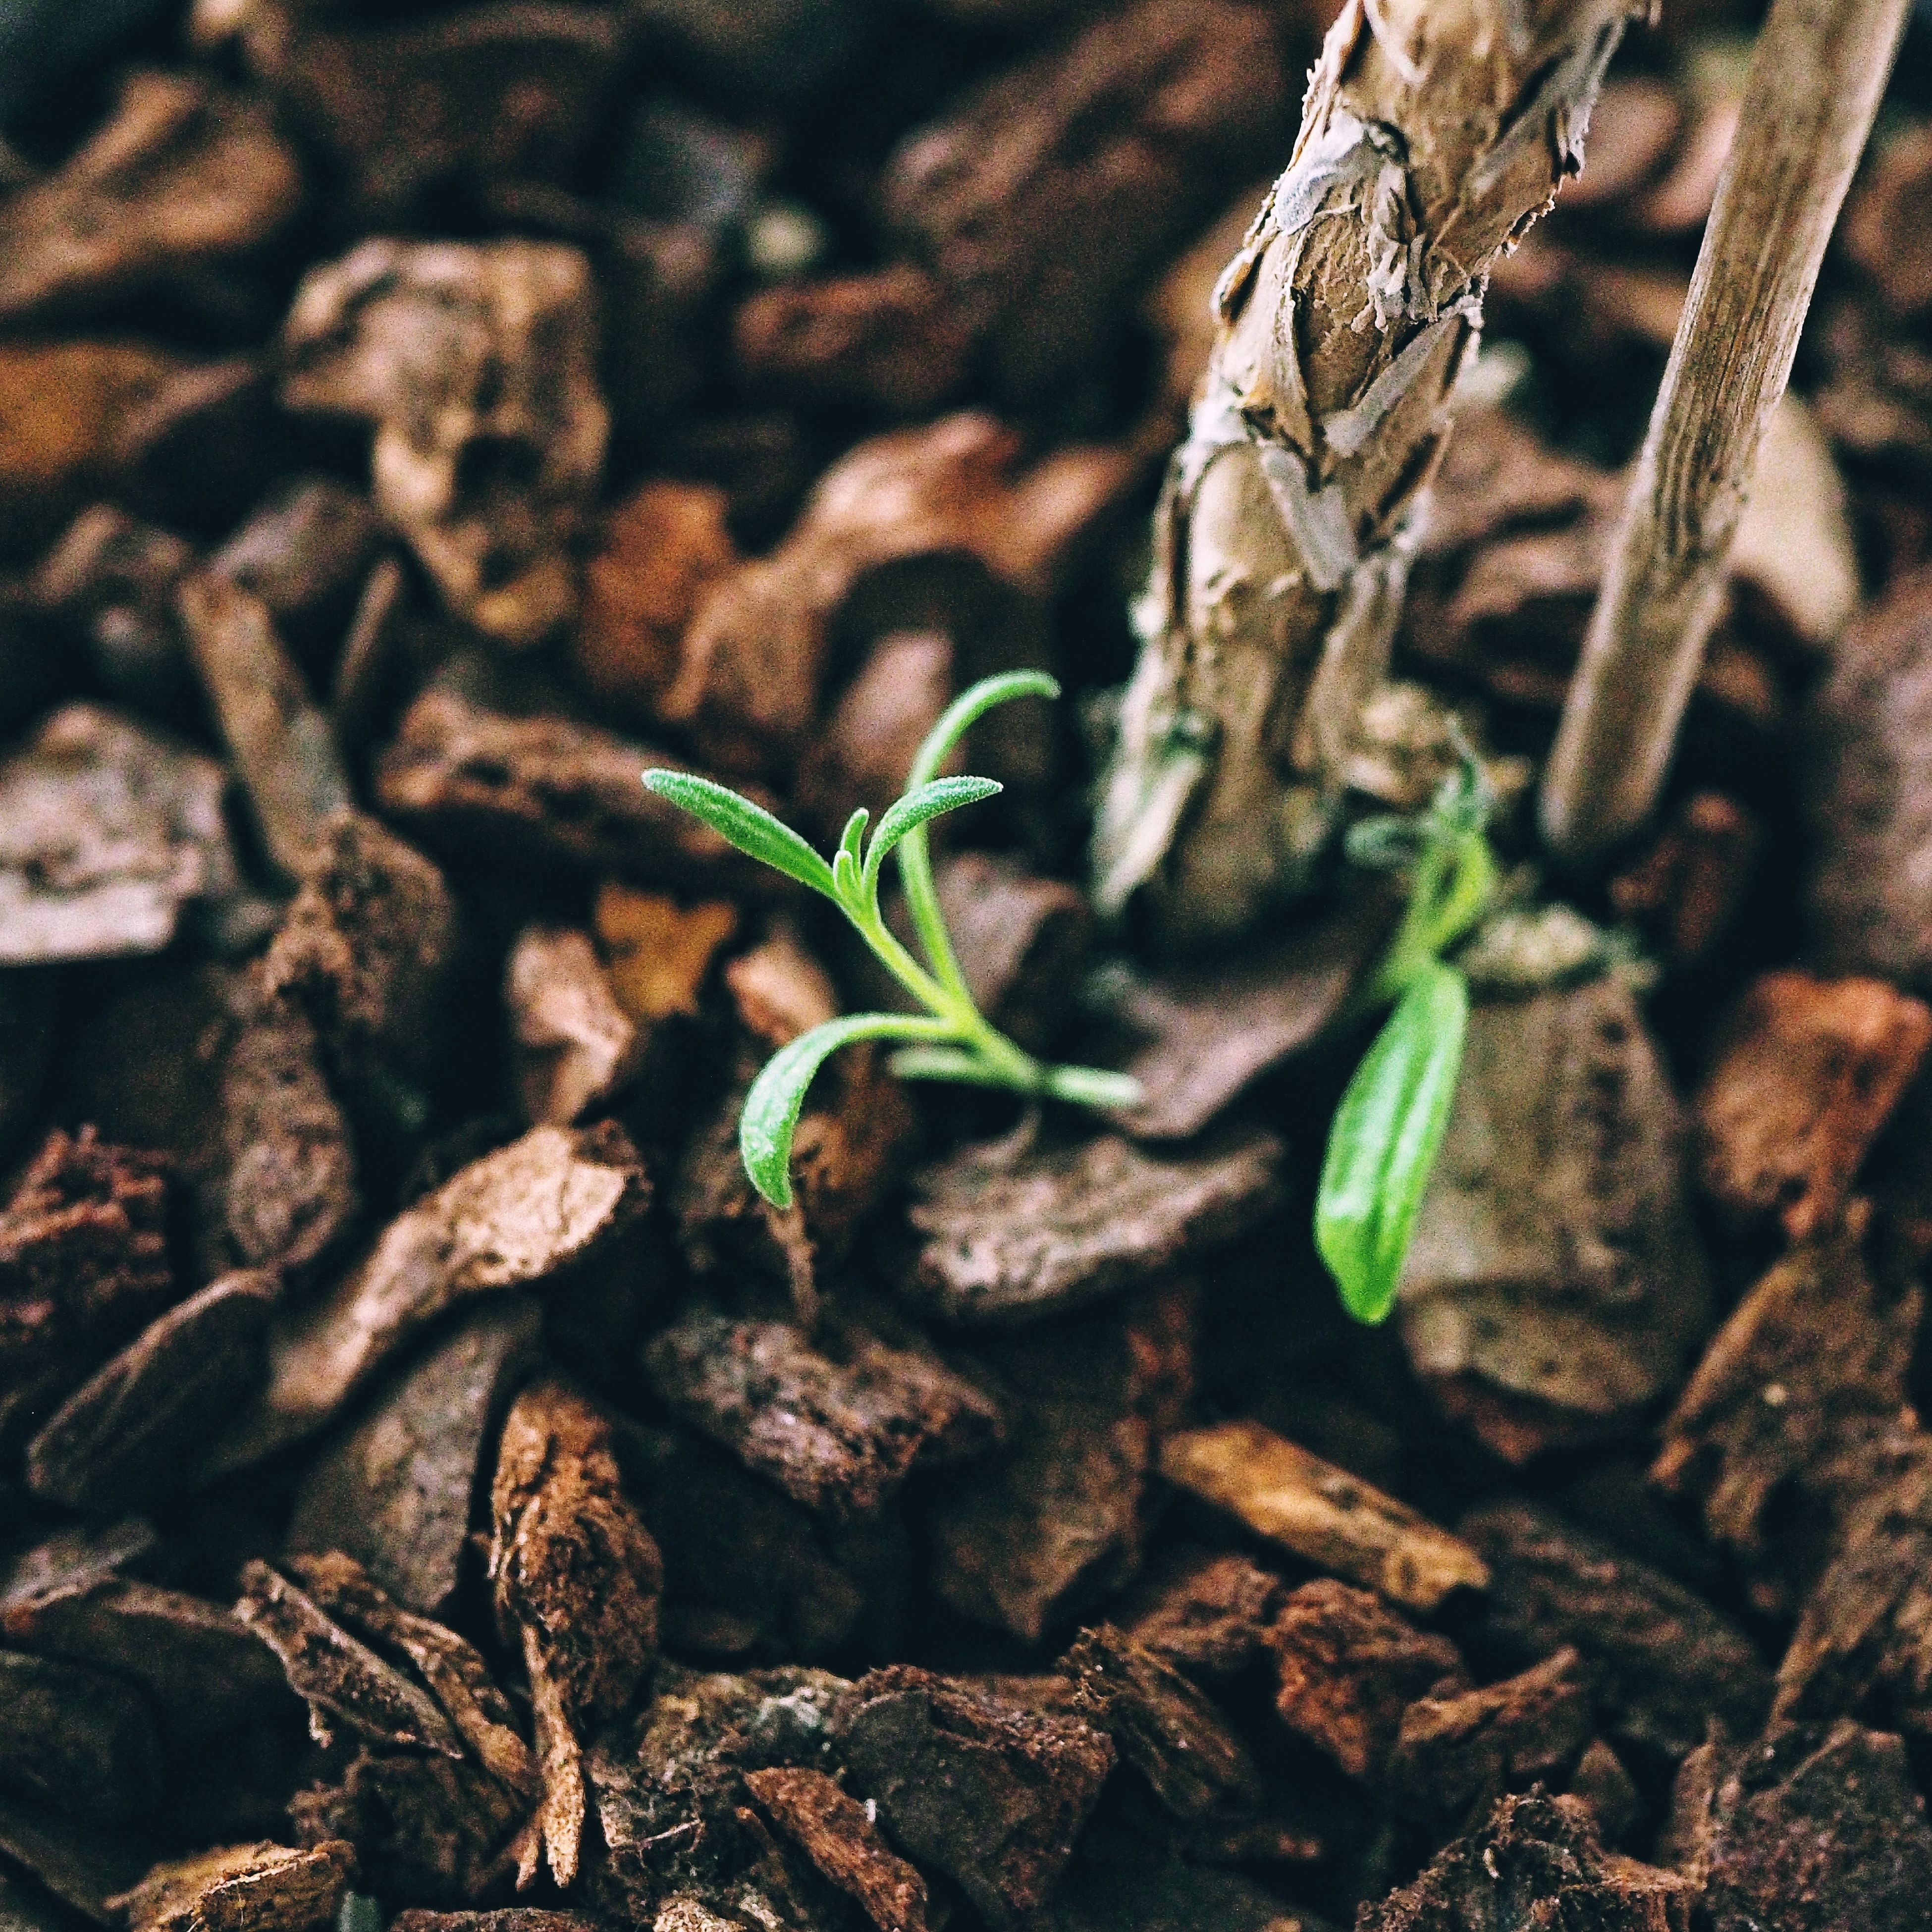 leaf, plant, growth, nature, no people, close-up, fragility, freshness, outdoors, day